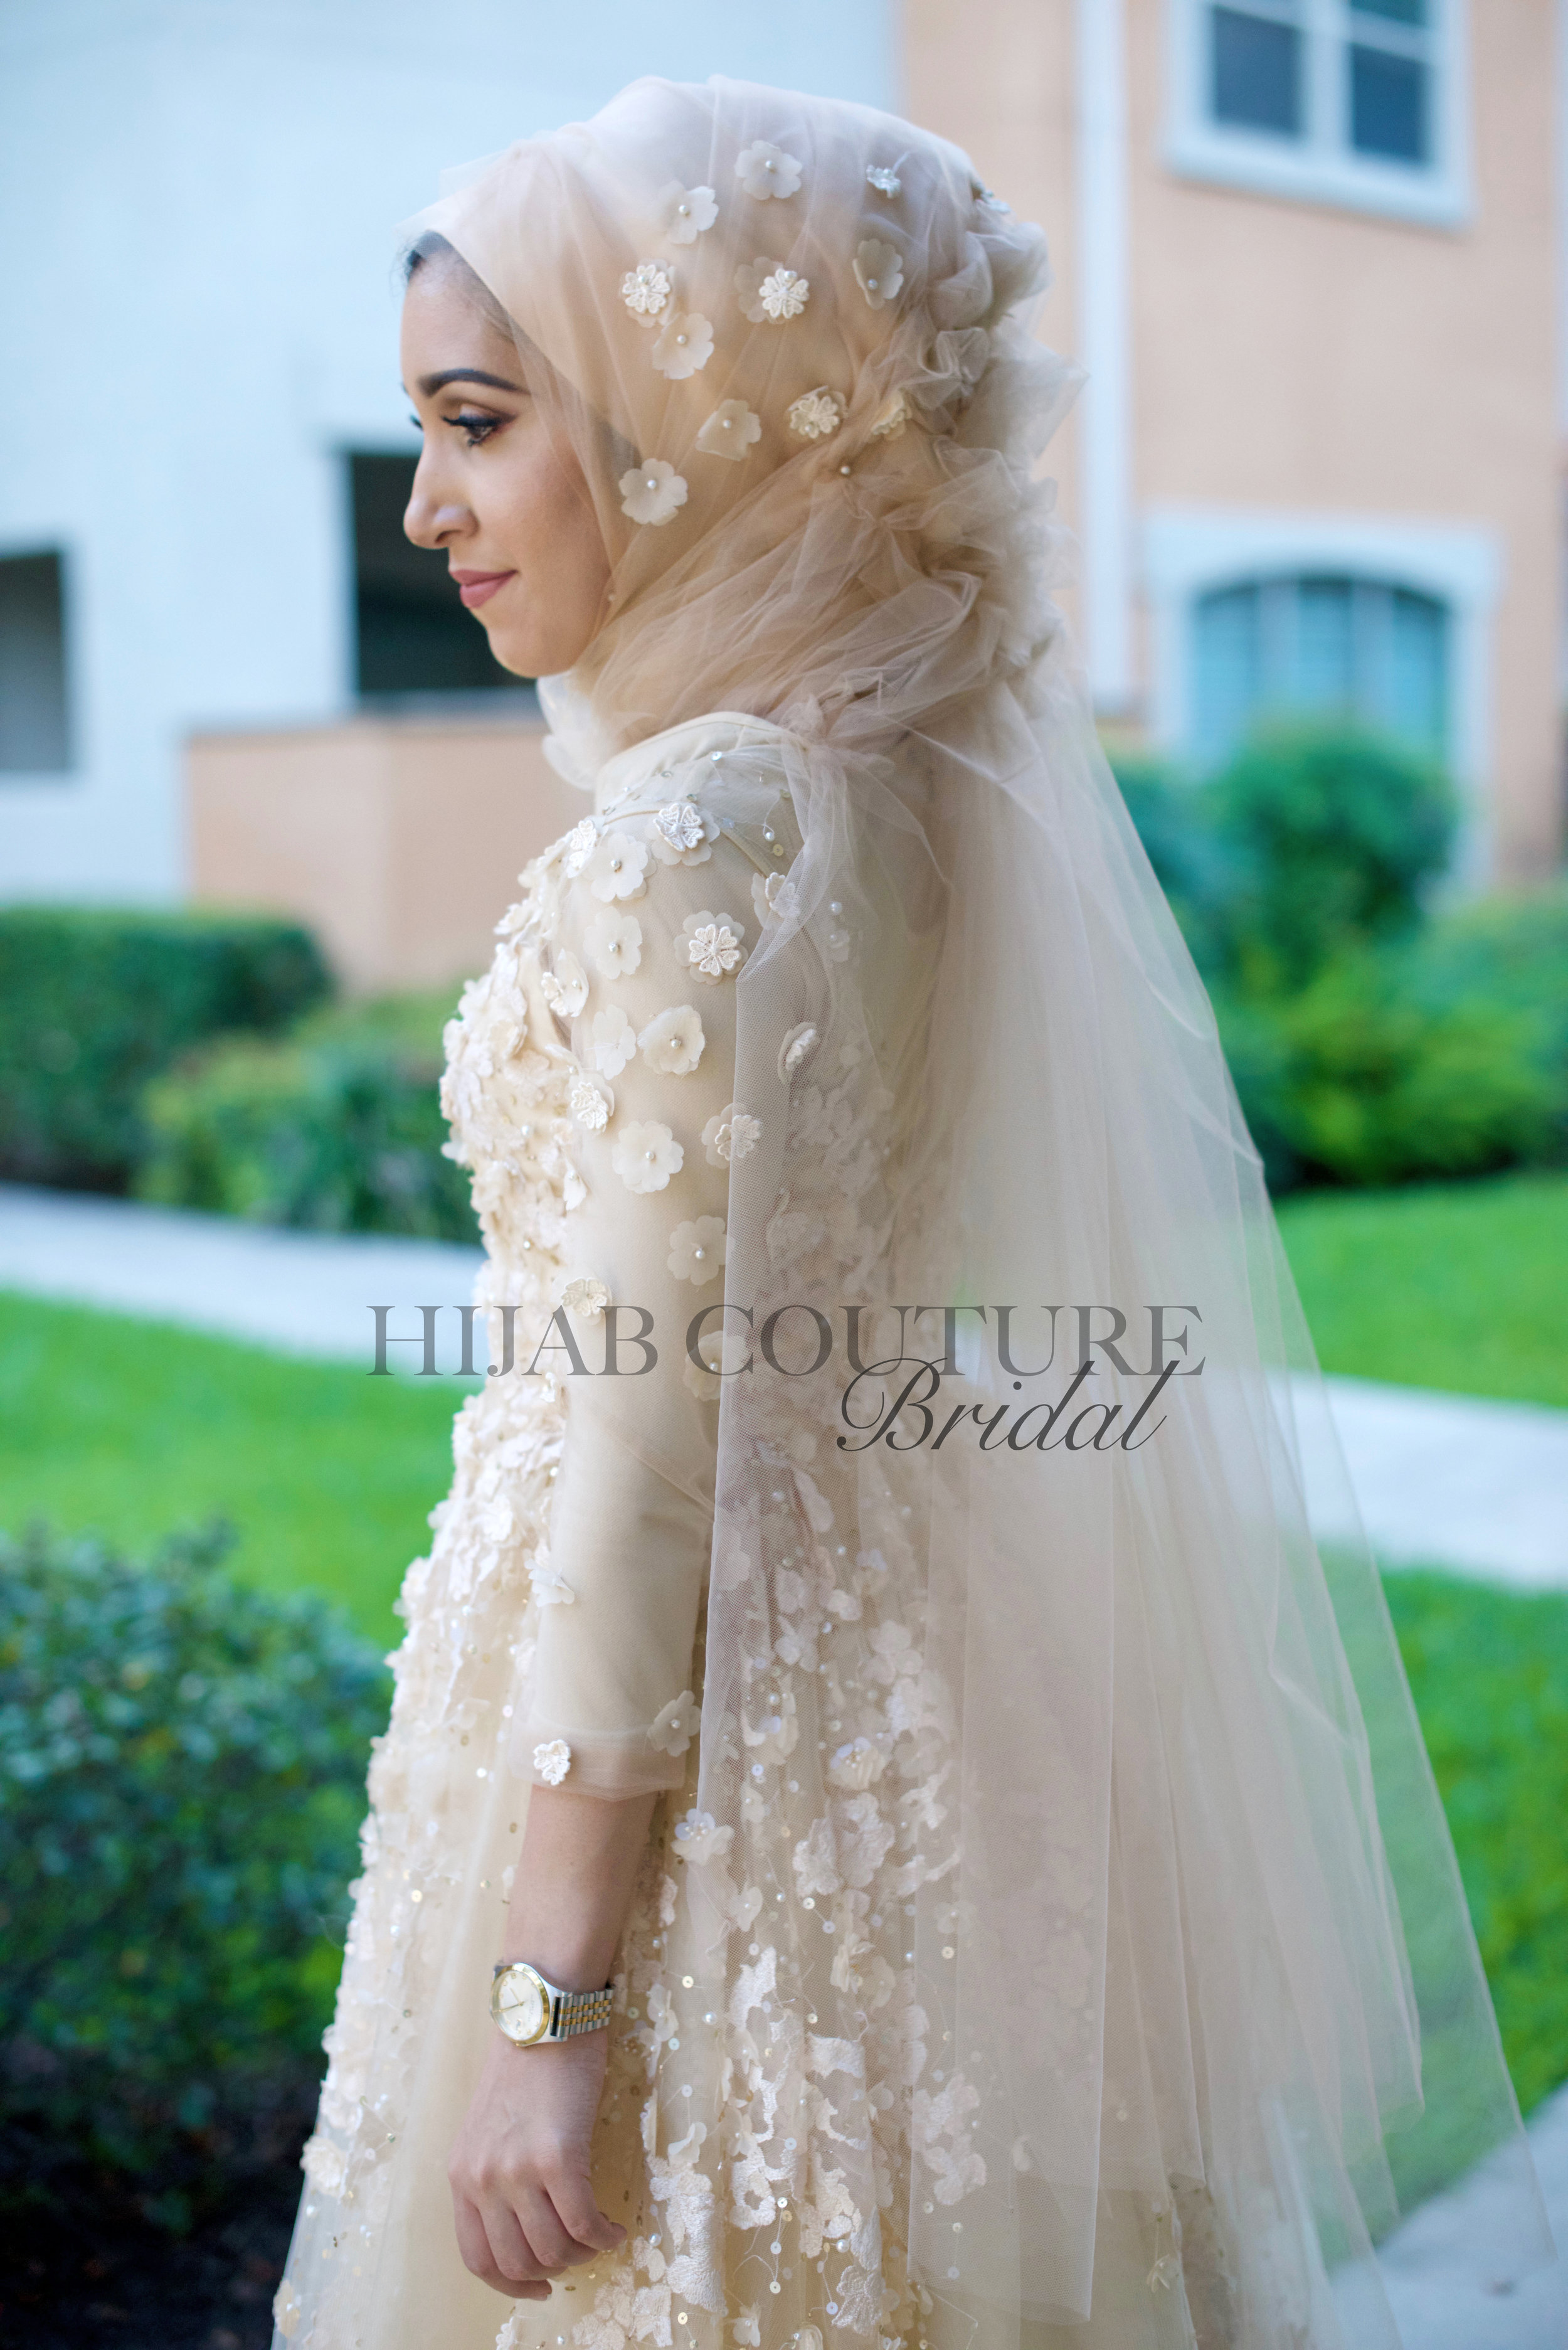 Hijab Couture 1